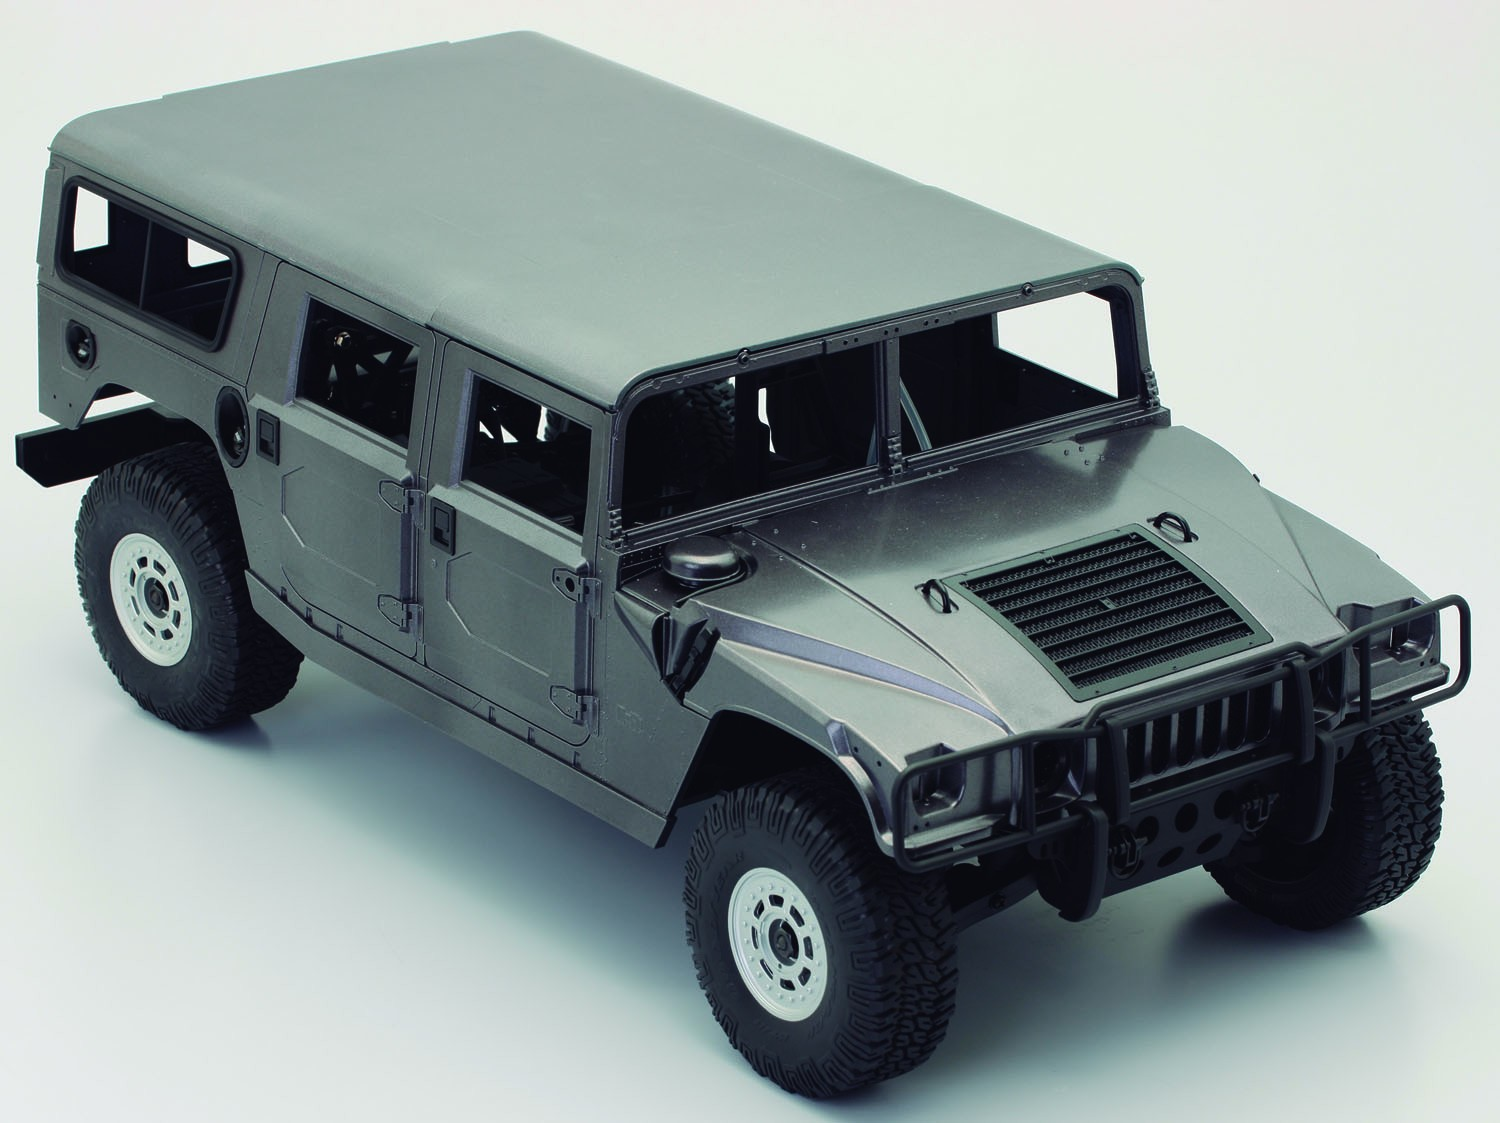 rc car build kits with Build The Hummer H1 Full Kit on Nuremberg News Latest Tamiya Cars Announced together with Build The Ford Mustang Shelby Model besides Build The Hummer H1 Full Kit furthermore Liberty Walk Ferrari 458 moreover Radioshack Clock Kit.